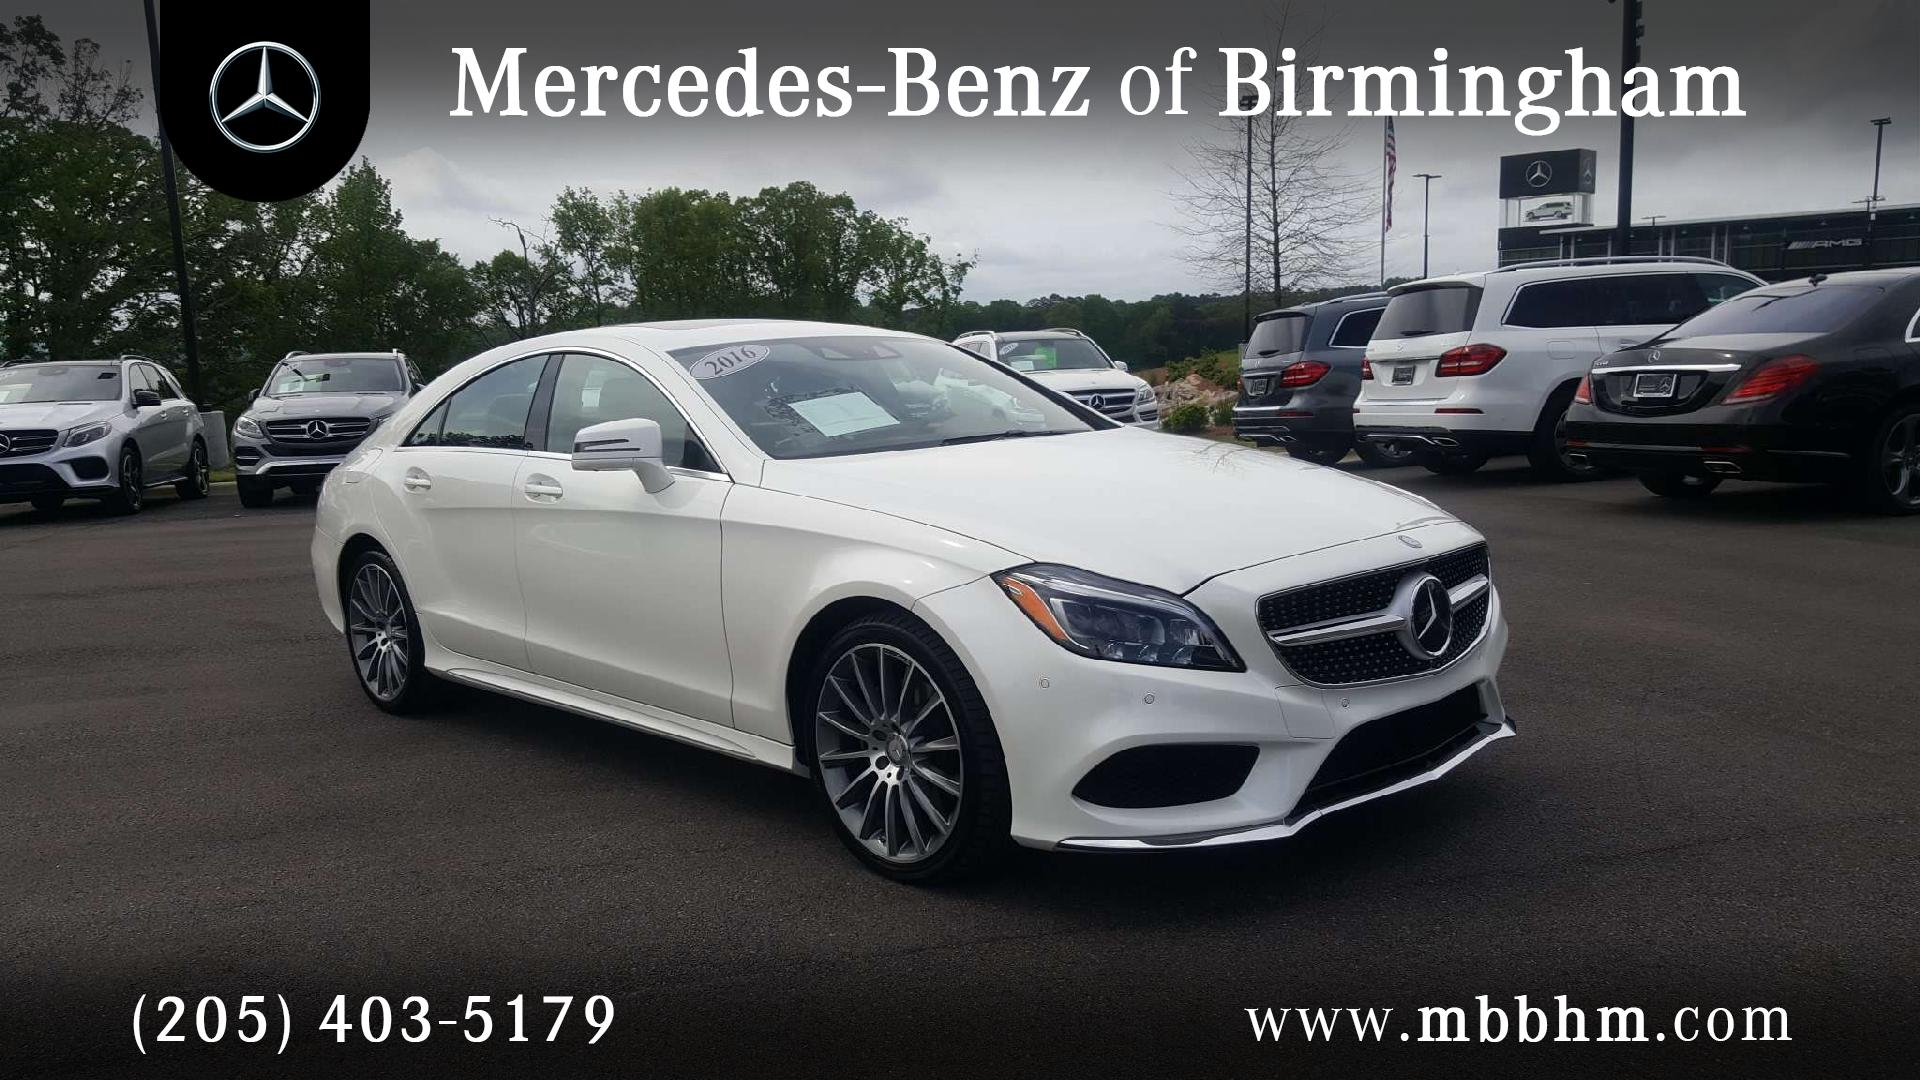 Certified Pre-Owned 2016 Mercedes-Benz CLS 400 Rear Wheel Drive Coupe